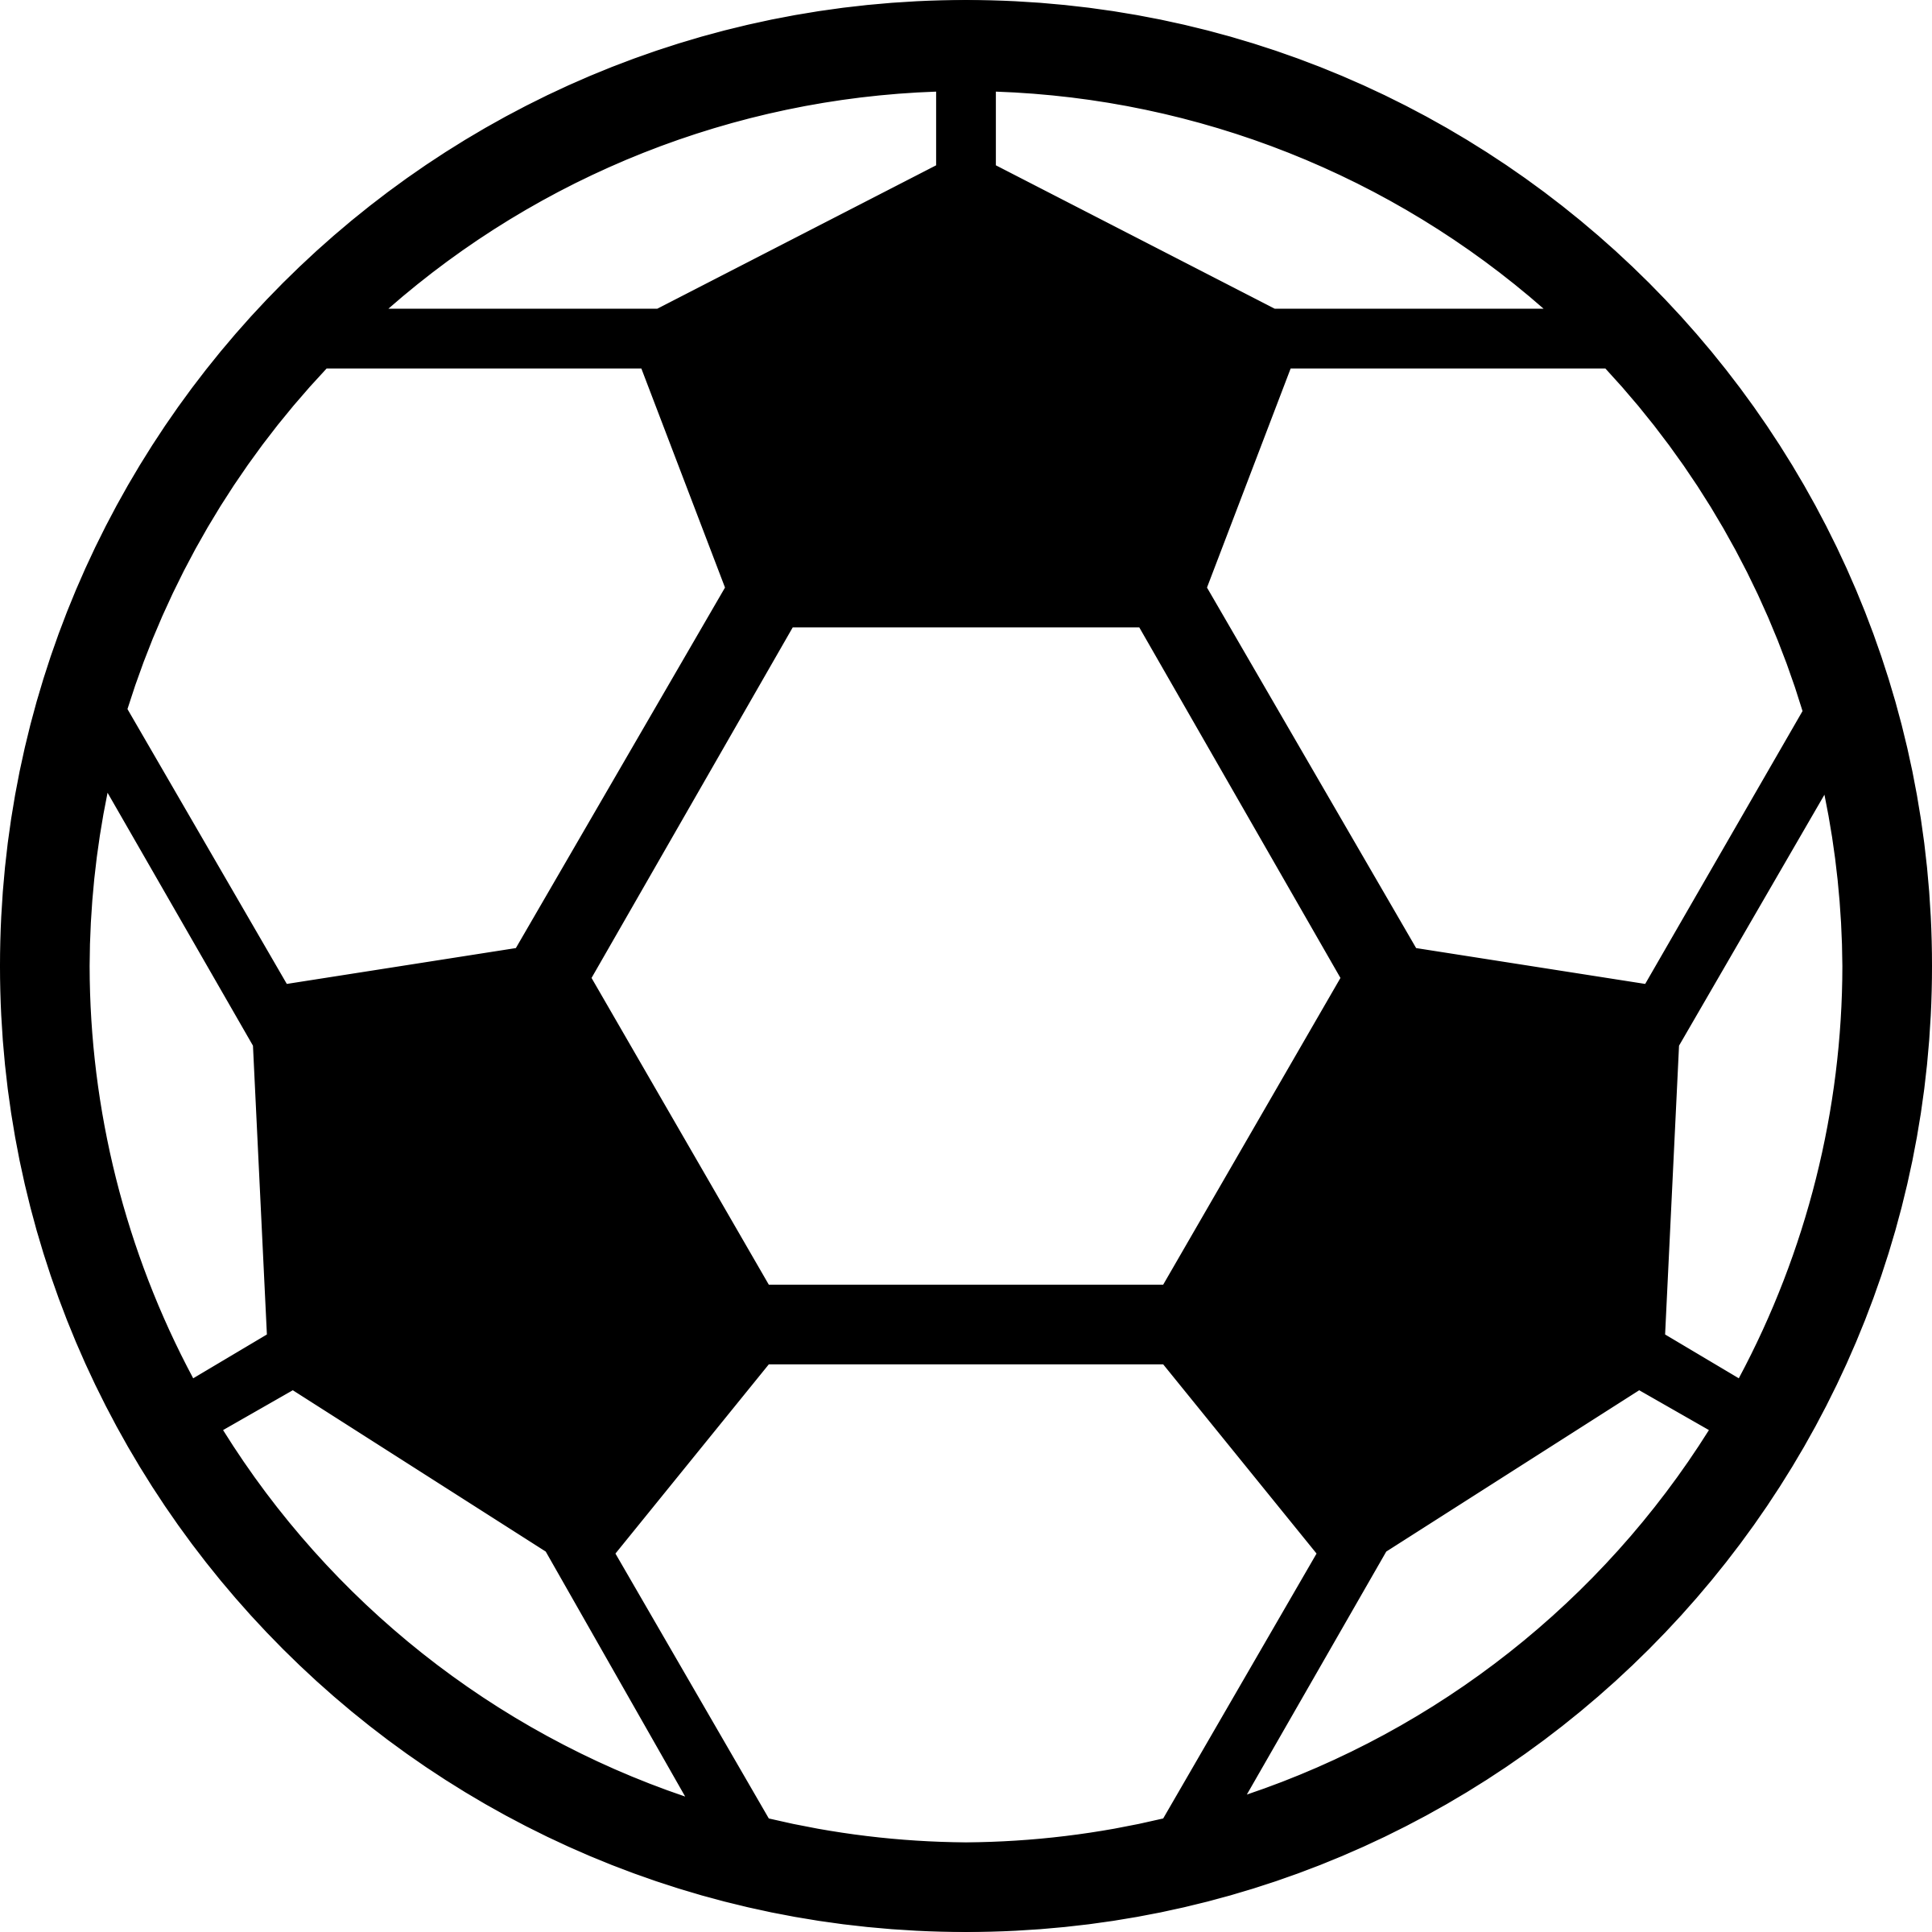 2400x2400 Soccer ball clip art free large images 3 clipartix 2